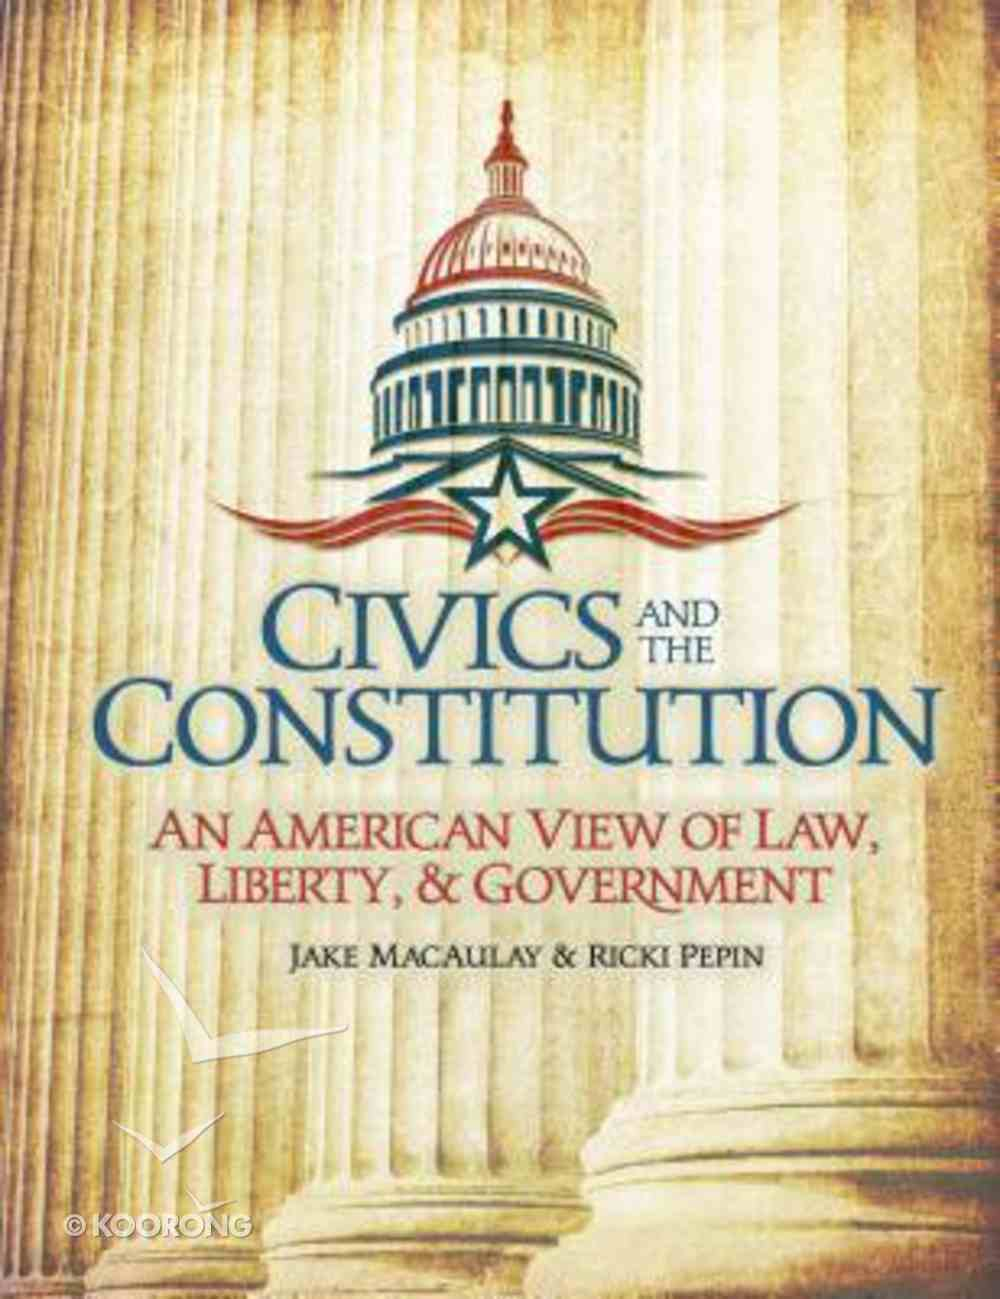 Civics and the Constitution: An American View of Law, Liberty, & Government (Student) Paperback